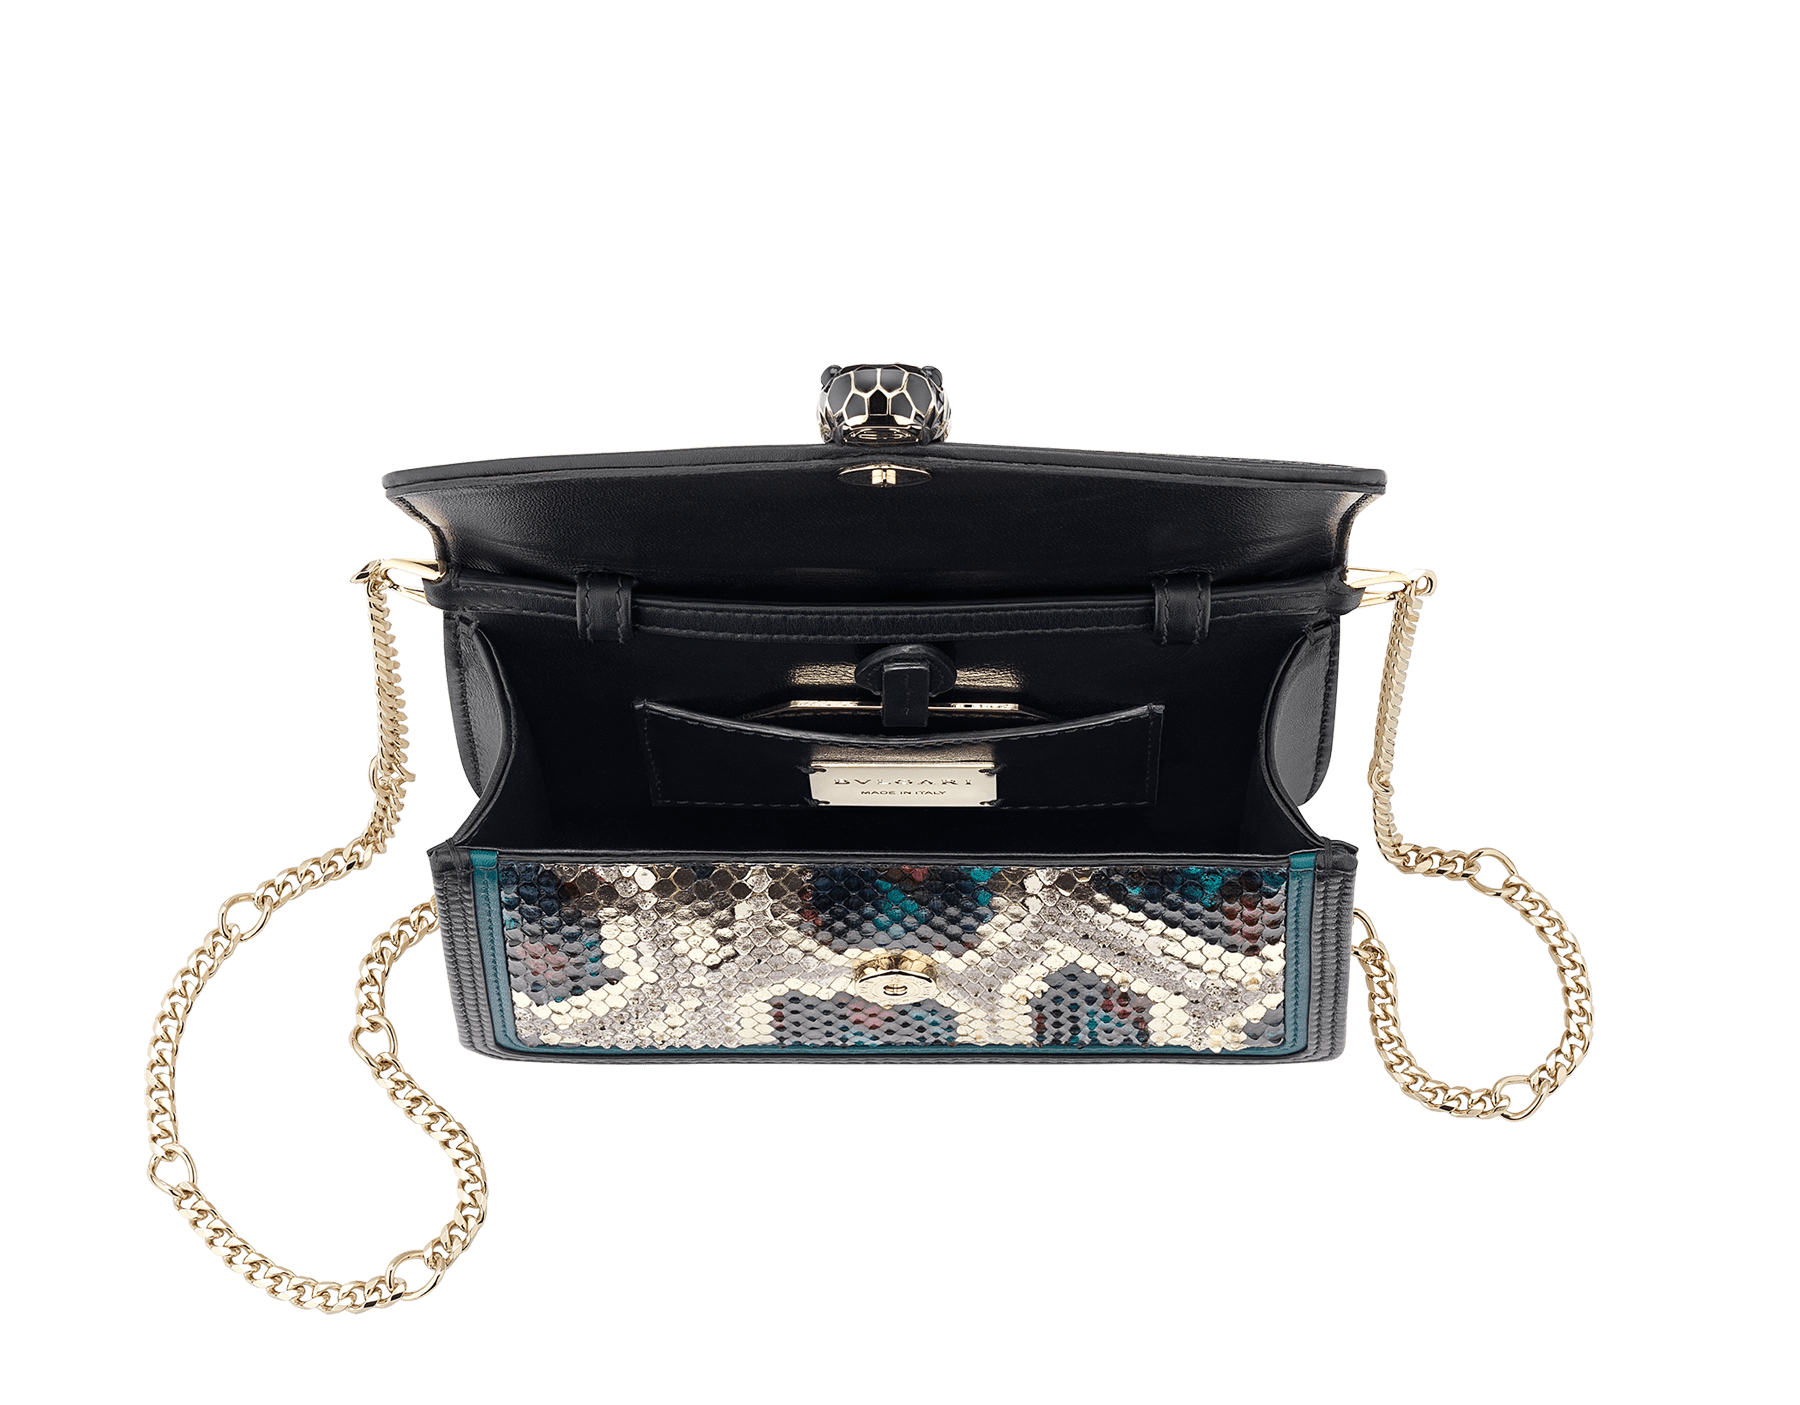 """Serpenti Diamond Blast"" crossbody micro bag in white agate Lunar python skin body and deep jade and black calf leather frames. Iconic snakehead closure in light gold plated brass enriched with deep jade and black enamel and black onyx eyes. 288266 image 4"